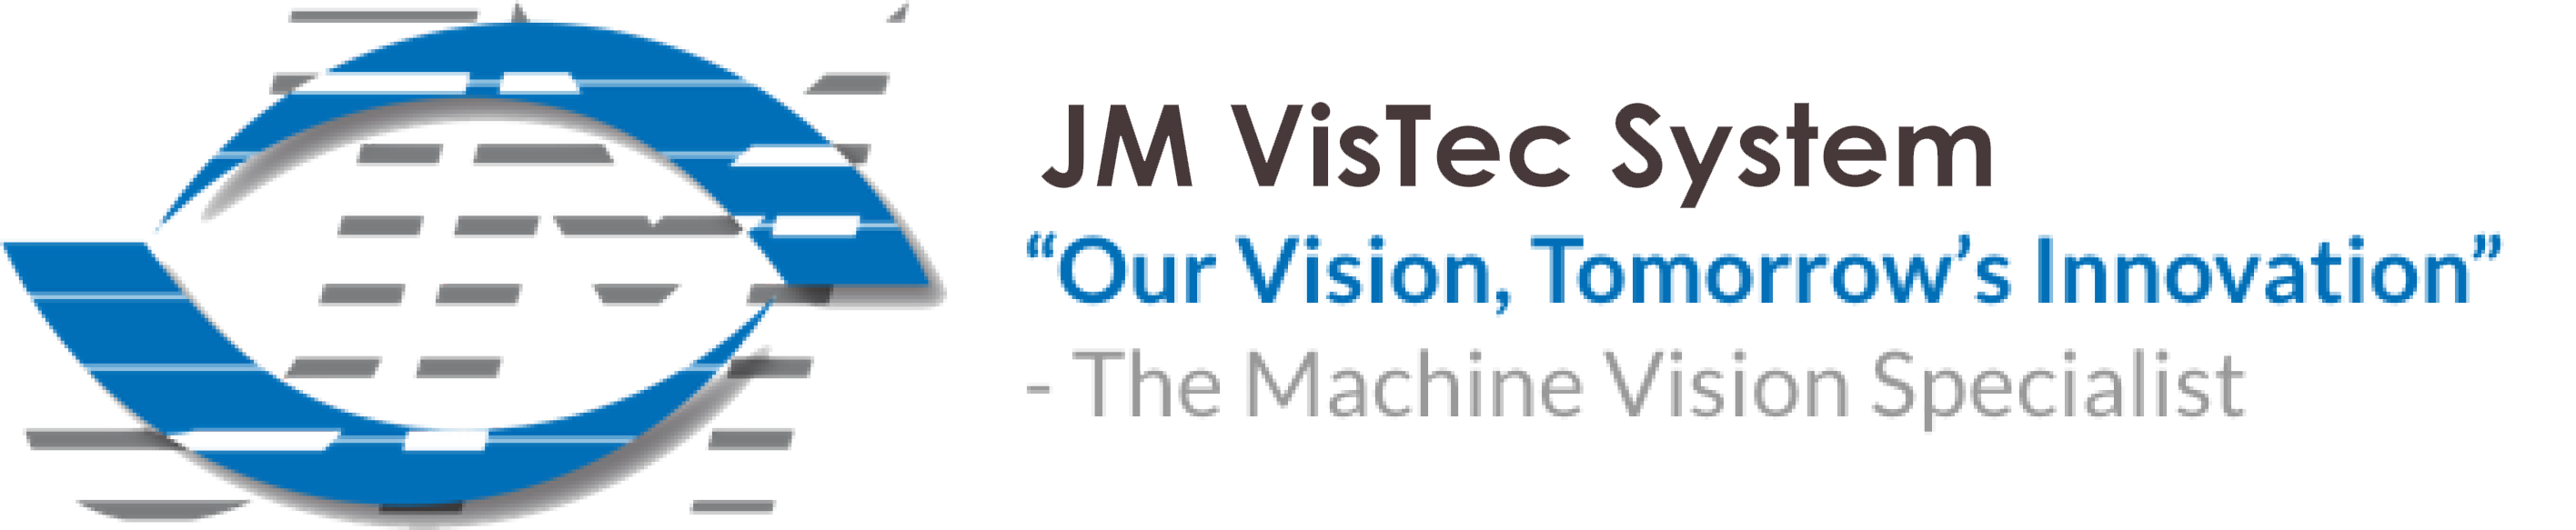 JM Vistec System